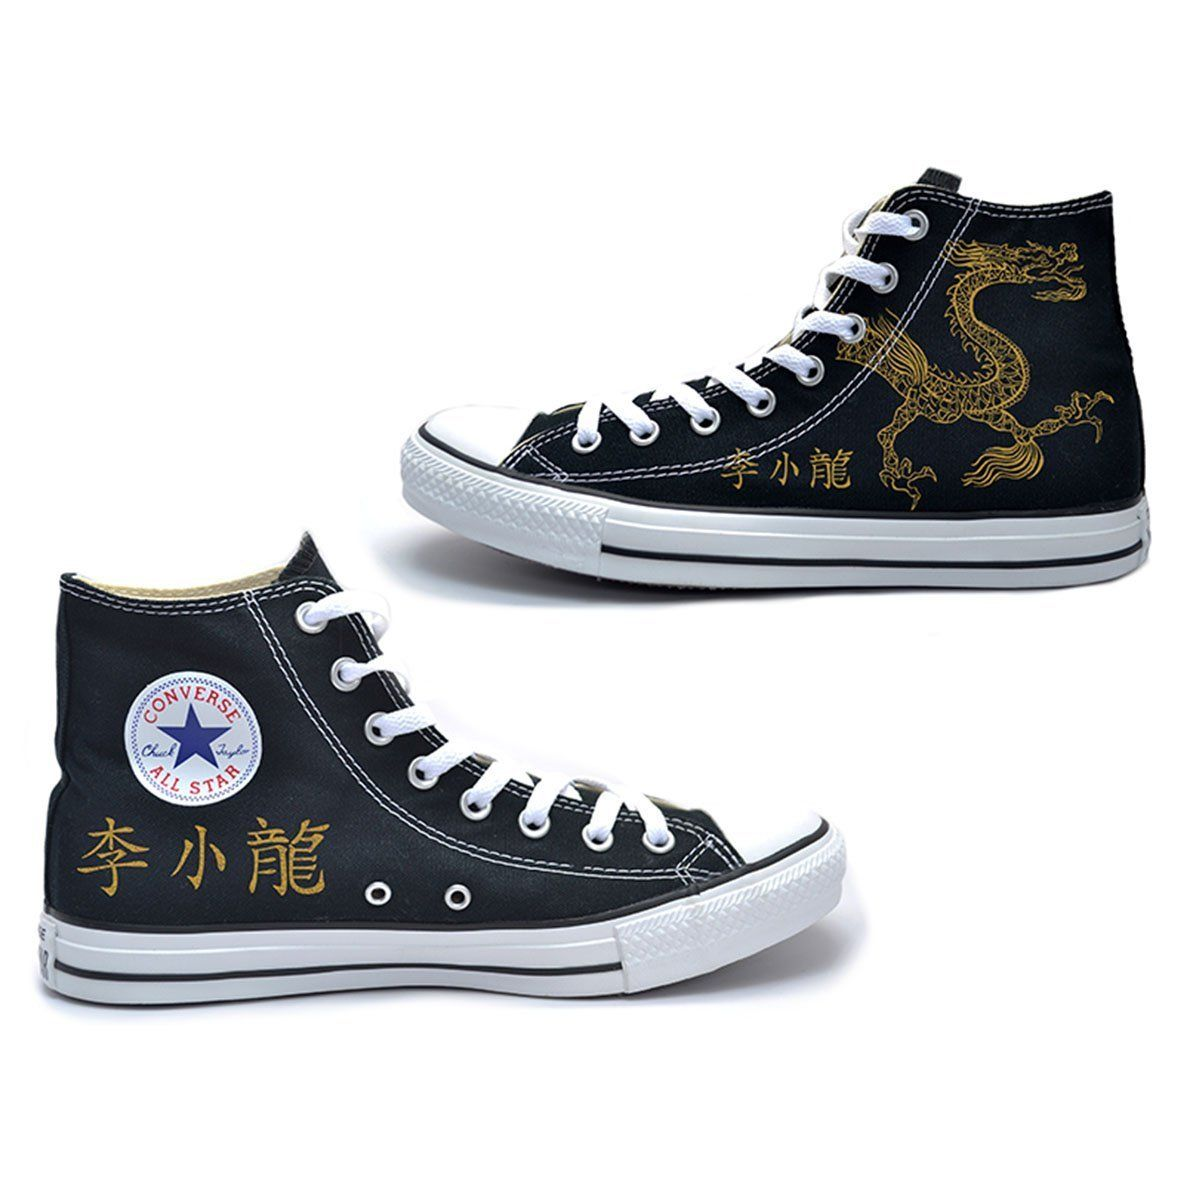 548022d9ebccc7 Lee Little Dragon Converse Chuck Taylor All Star High Top Sneakers - Bruce  Lee Official Store